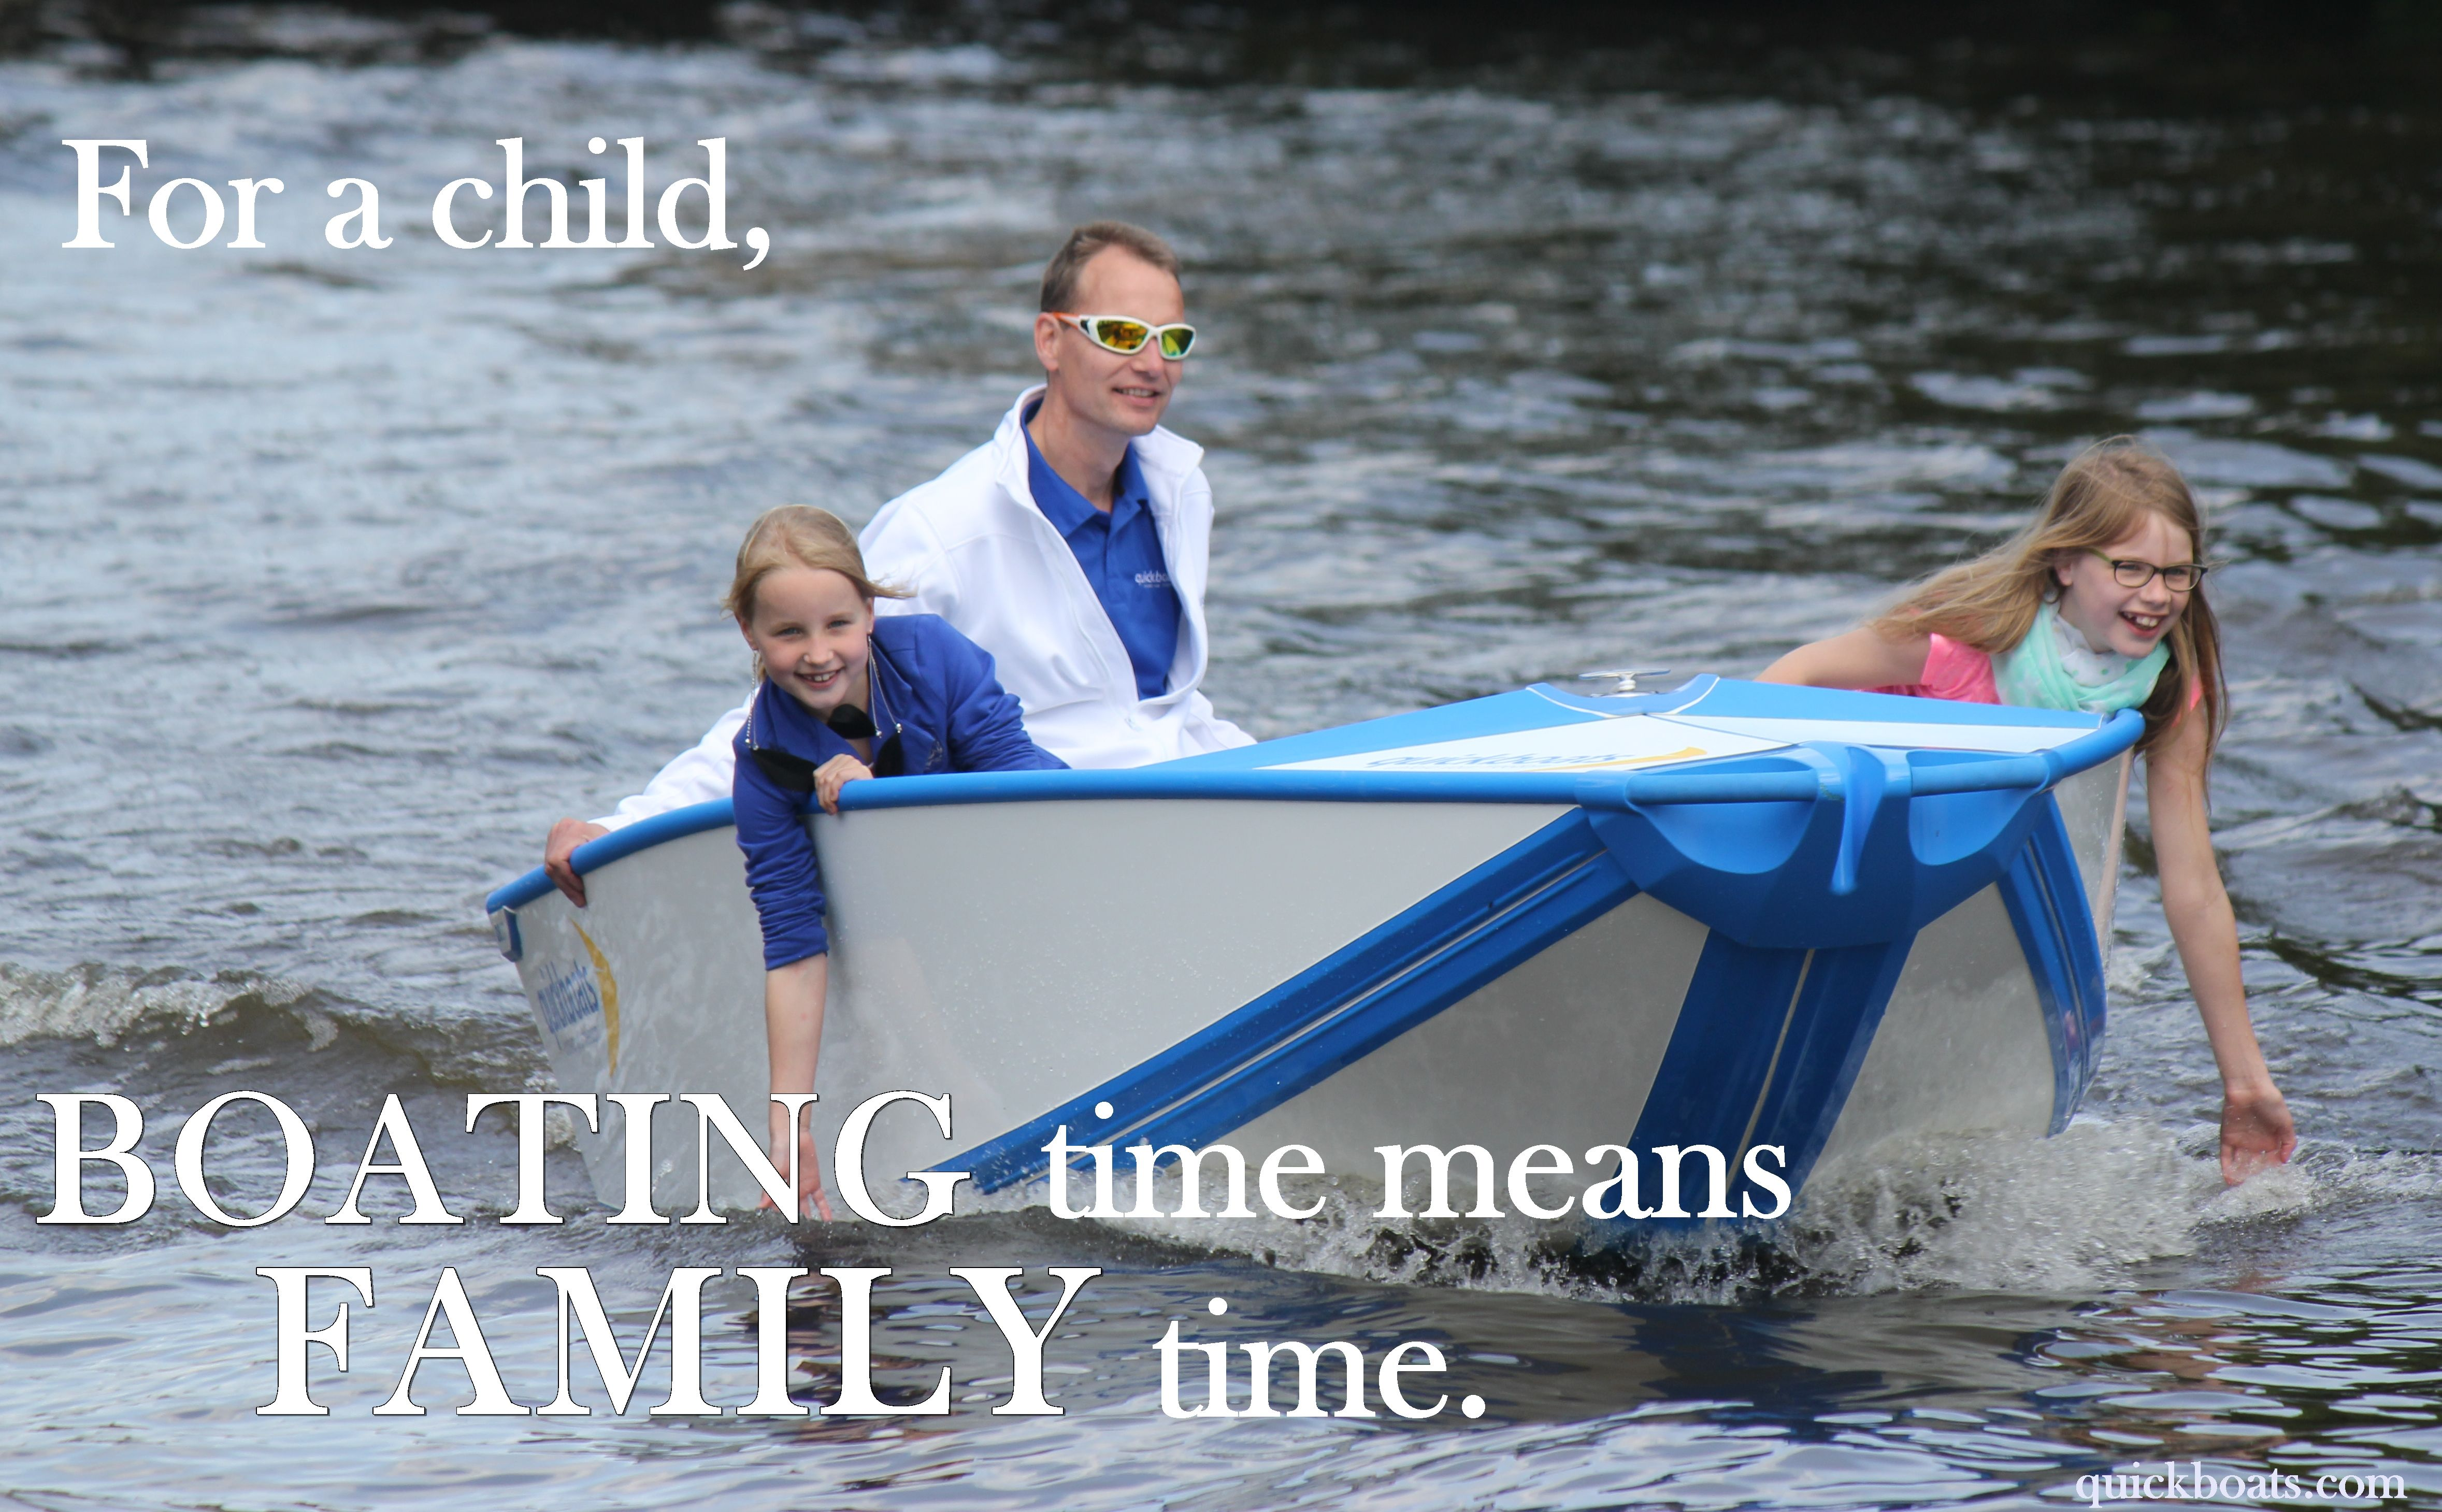 Boating Quote Family Fun Boating Quotes Boating Quotes Funny Boat Humor